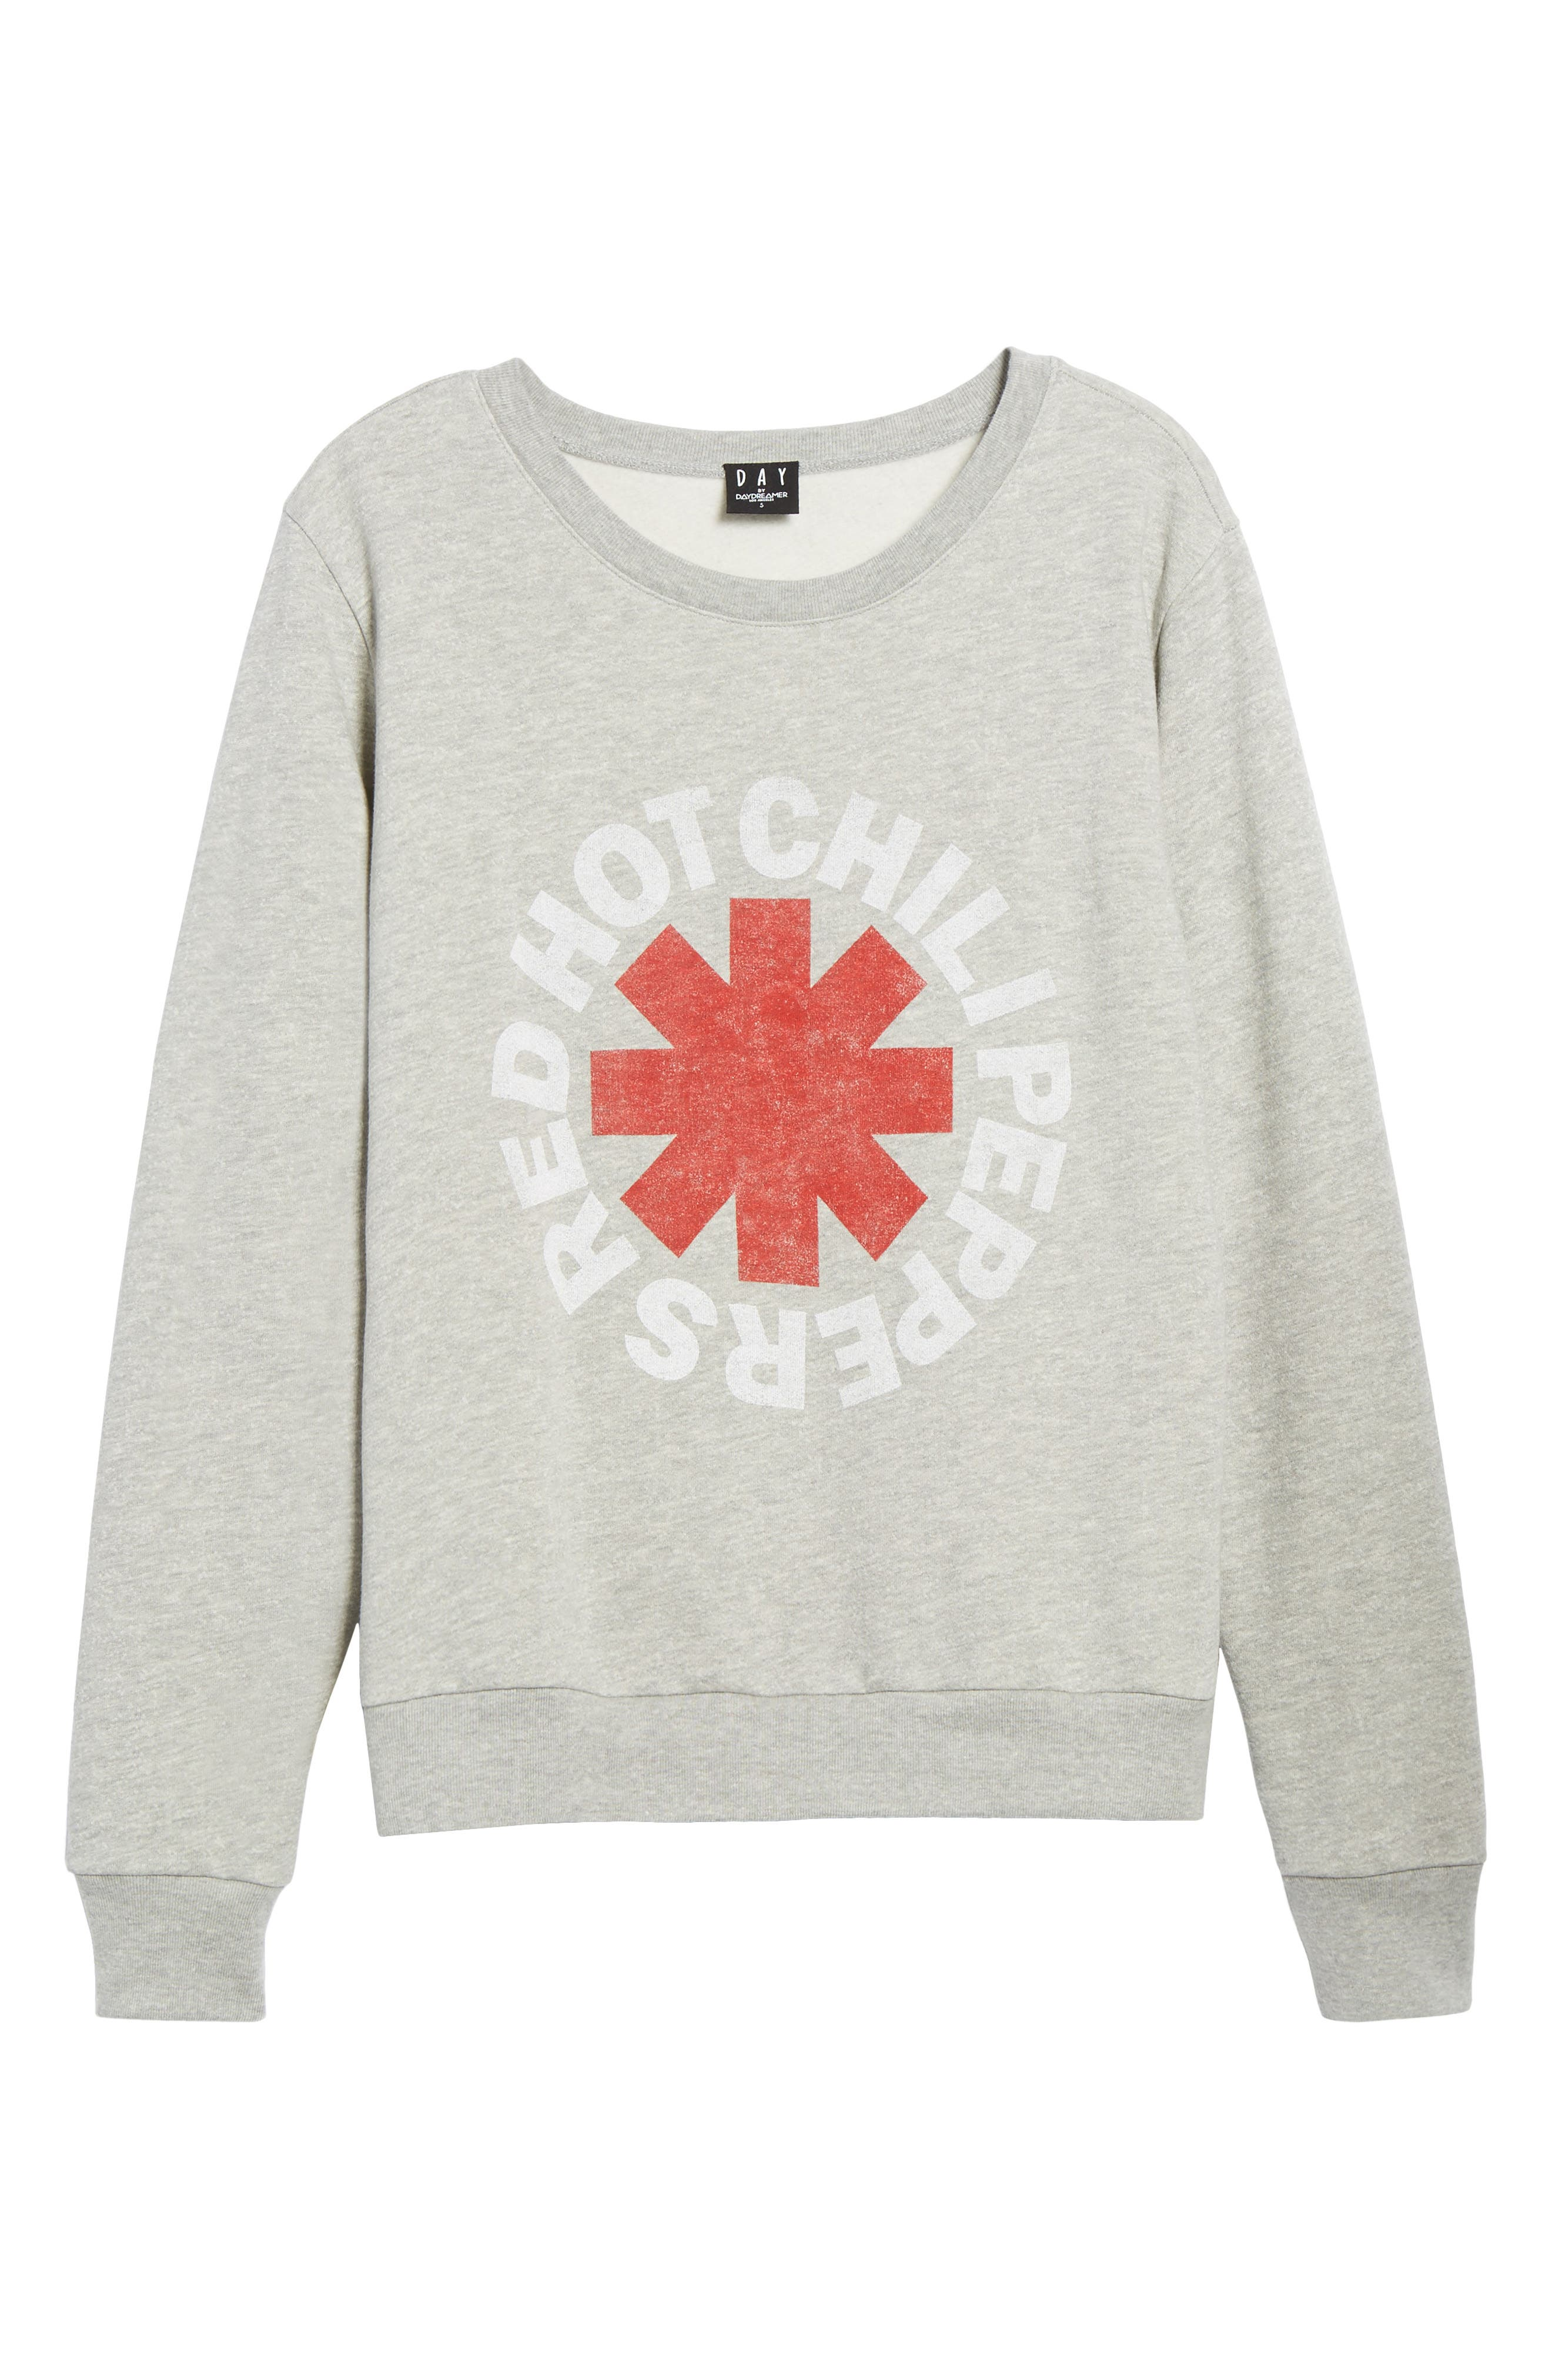 Red Hot Chili Peppers Sweatshirt,                             Alternate thumbnail 6, color,